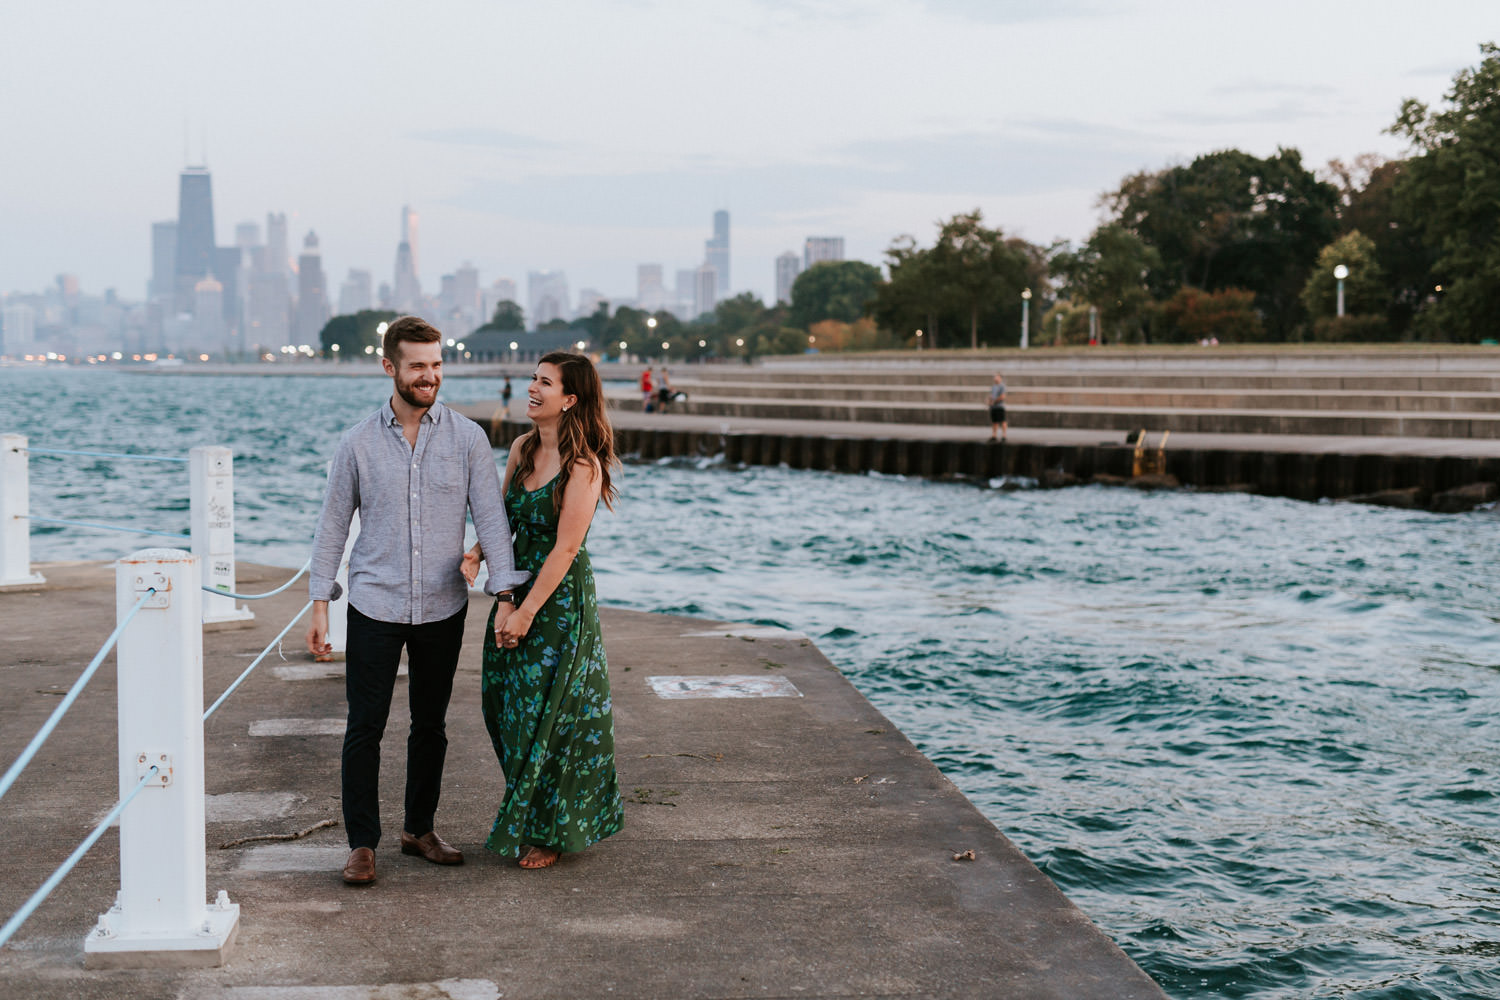 chicago wedding photography, engagement session